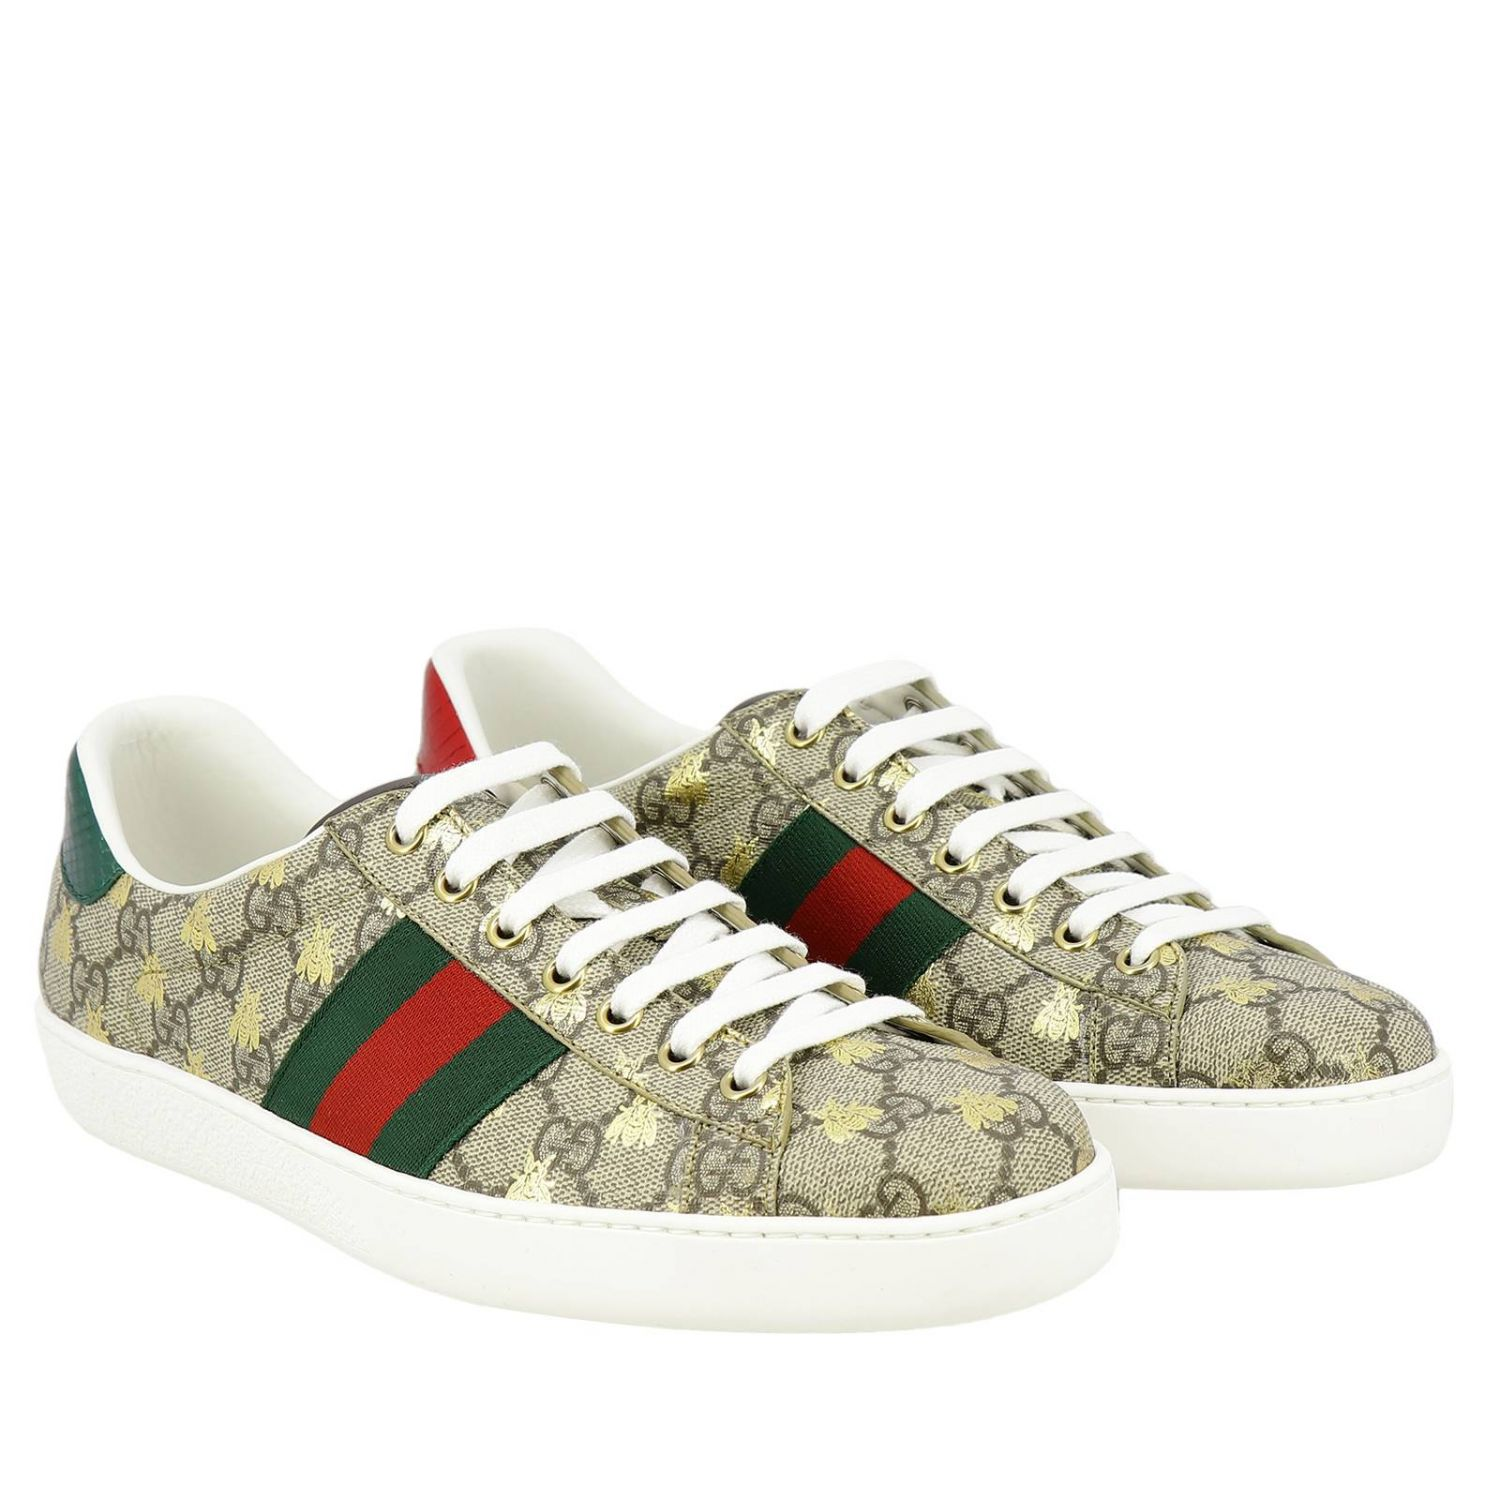 Sneakers New Ace in pelle GG Supreme Gucci con fasce Web e stampa Ape all over beige 2